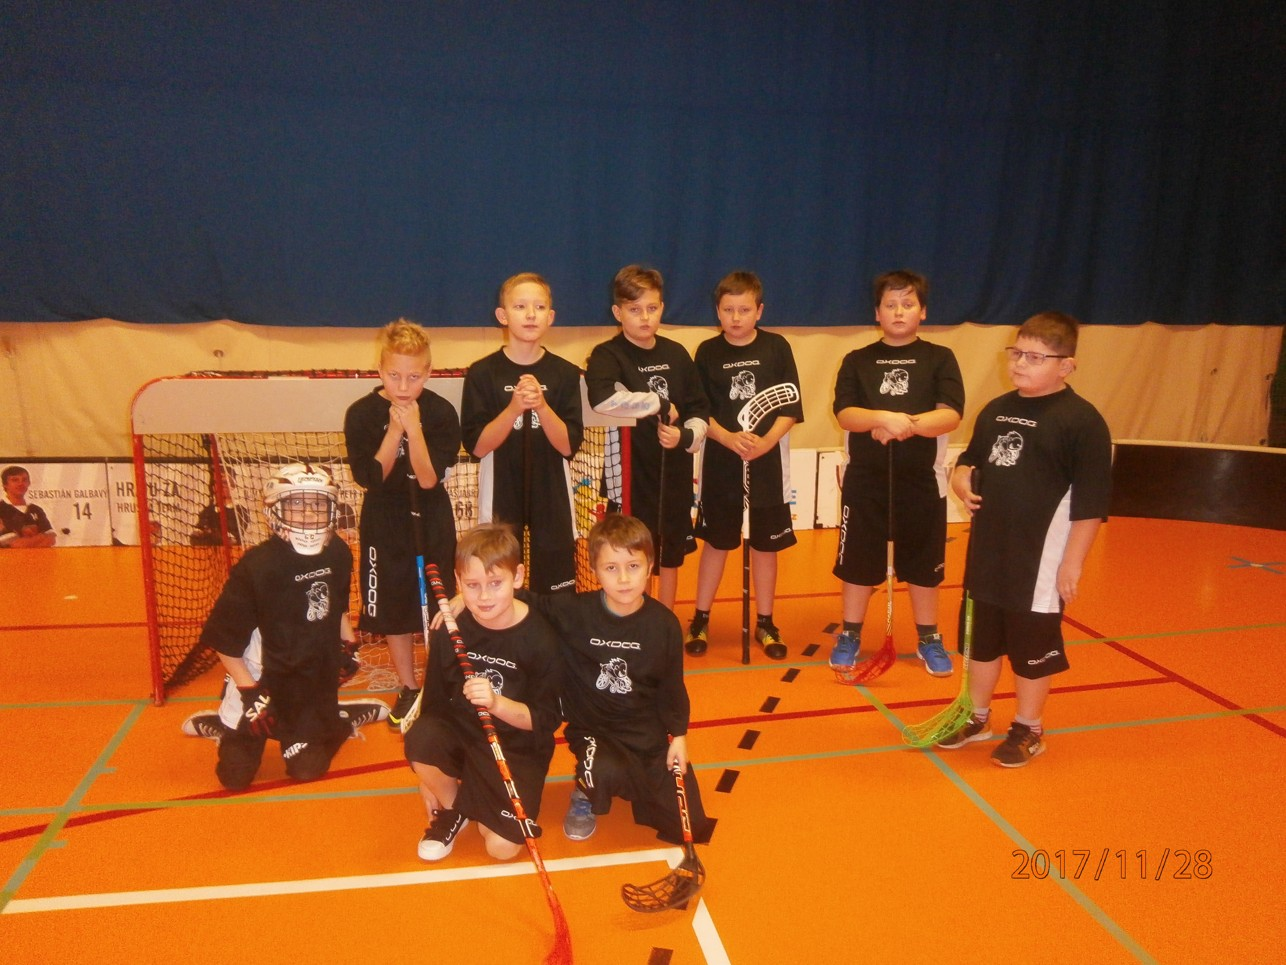 ceps cup 3 20171128 1502419416